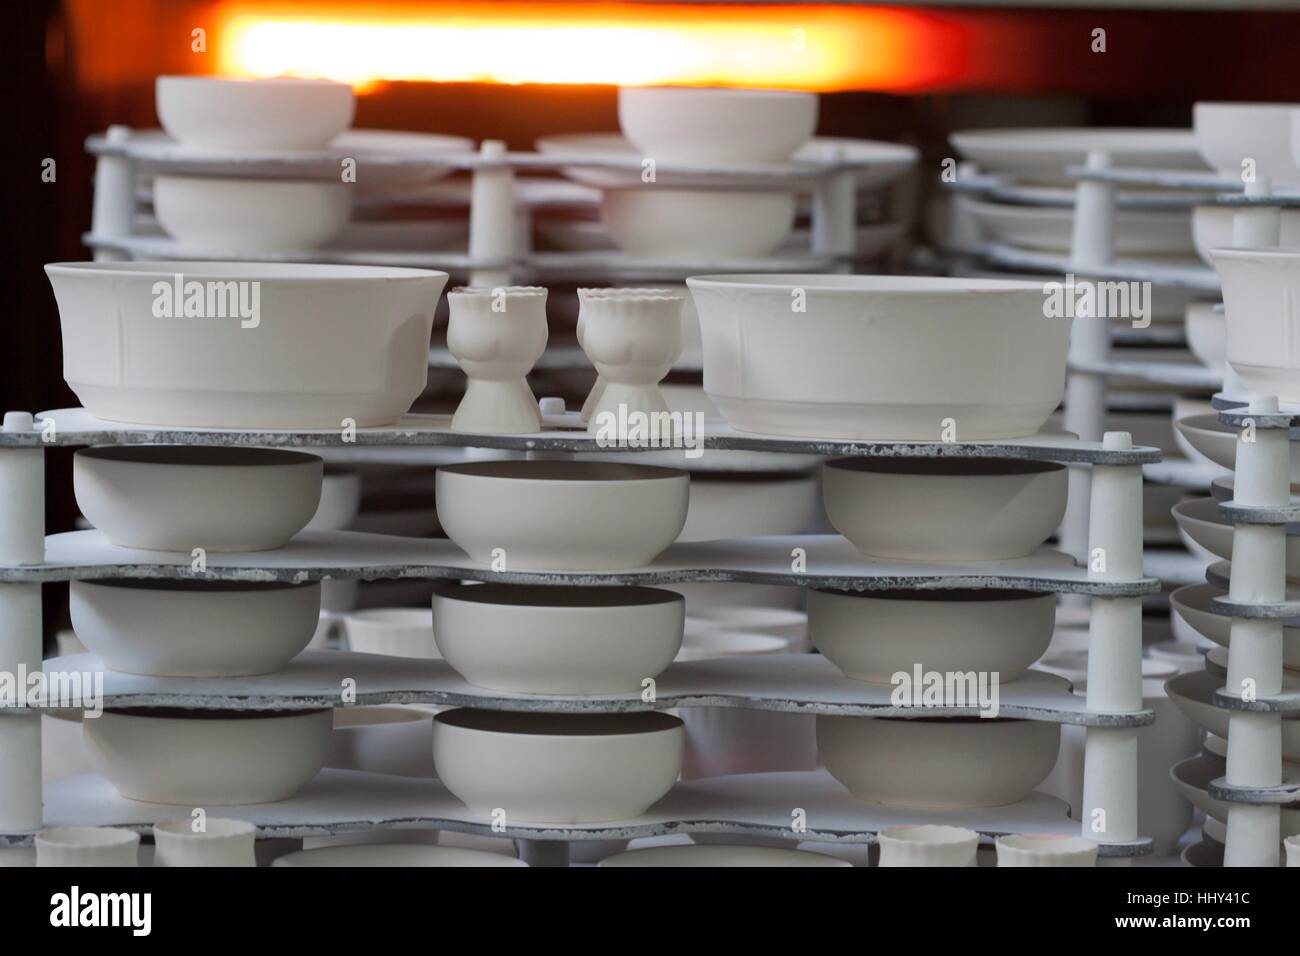 Chodziez, Poland - March 19, 2012 The factory produces porcelain. - Stock Image